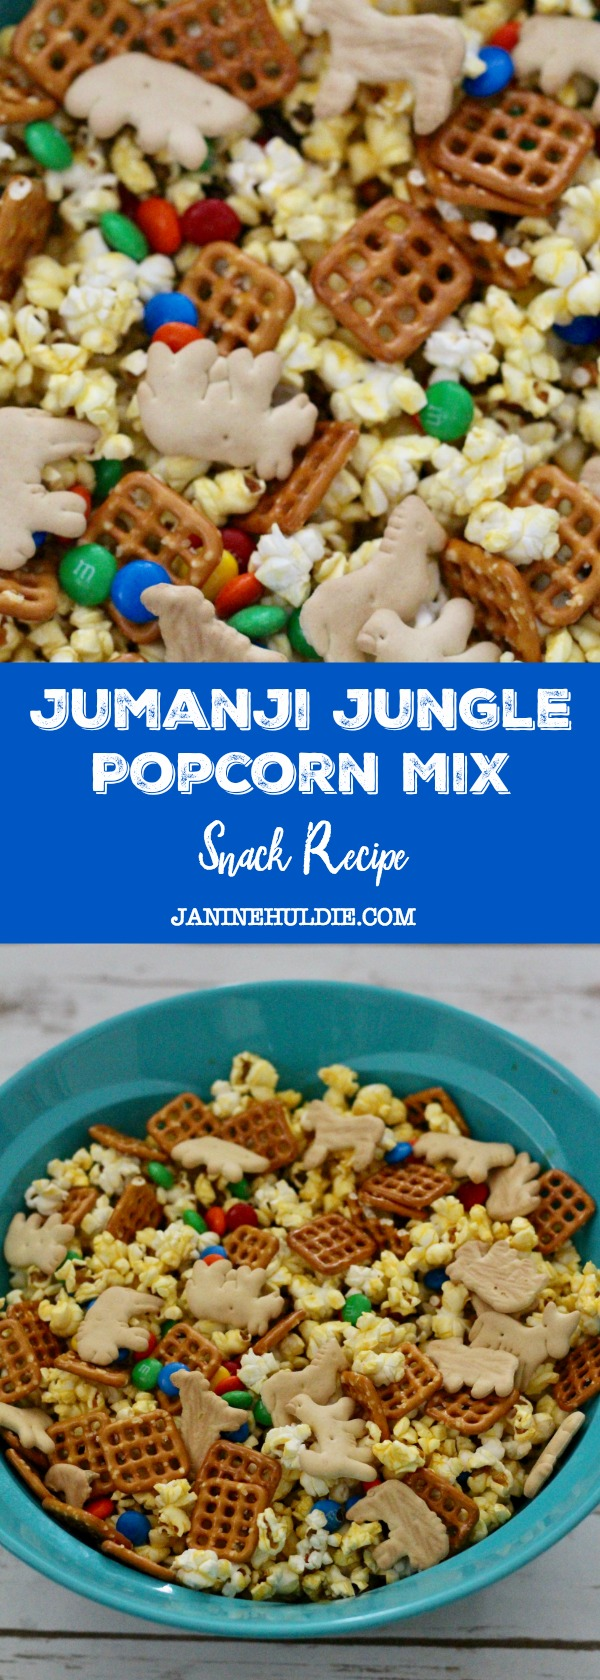 Jumanji Jungle Popcorn Mix Snack Recipe